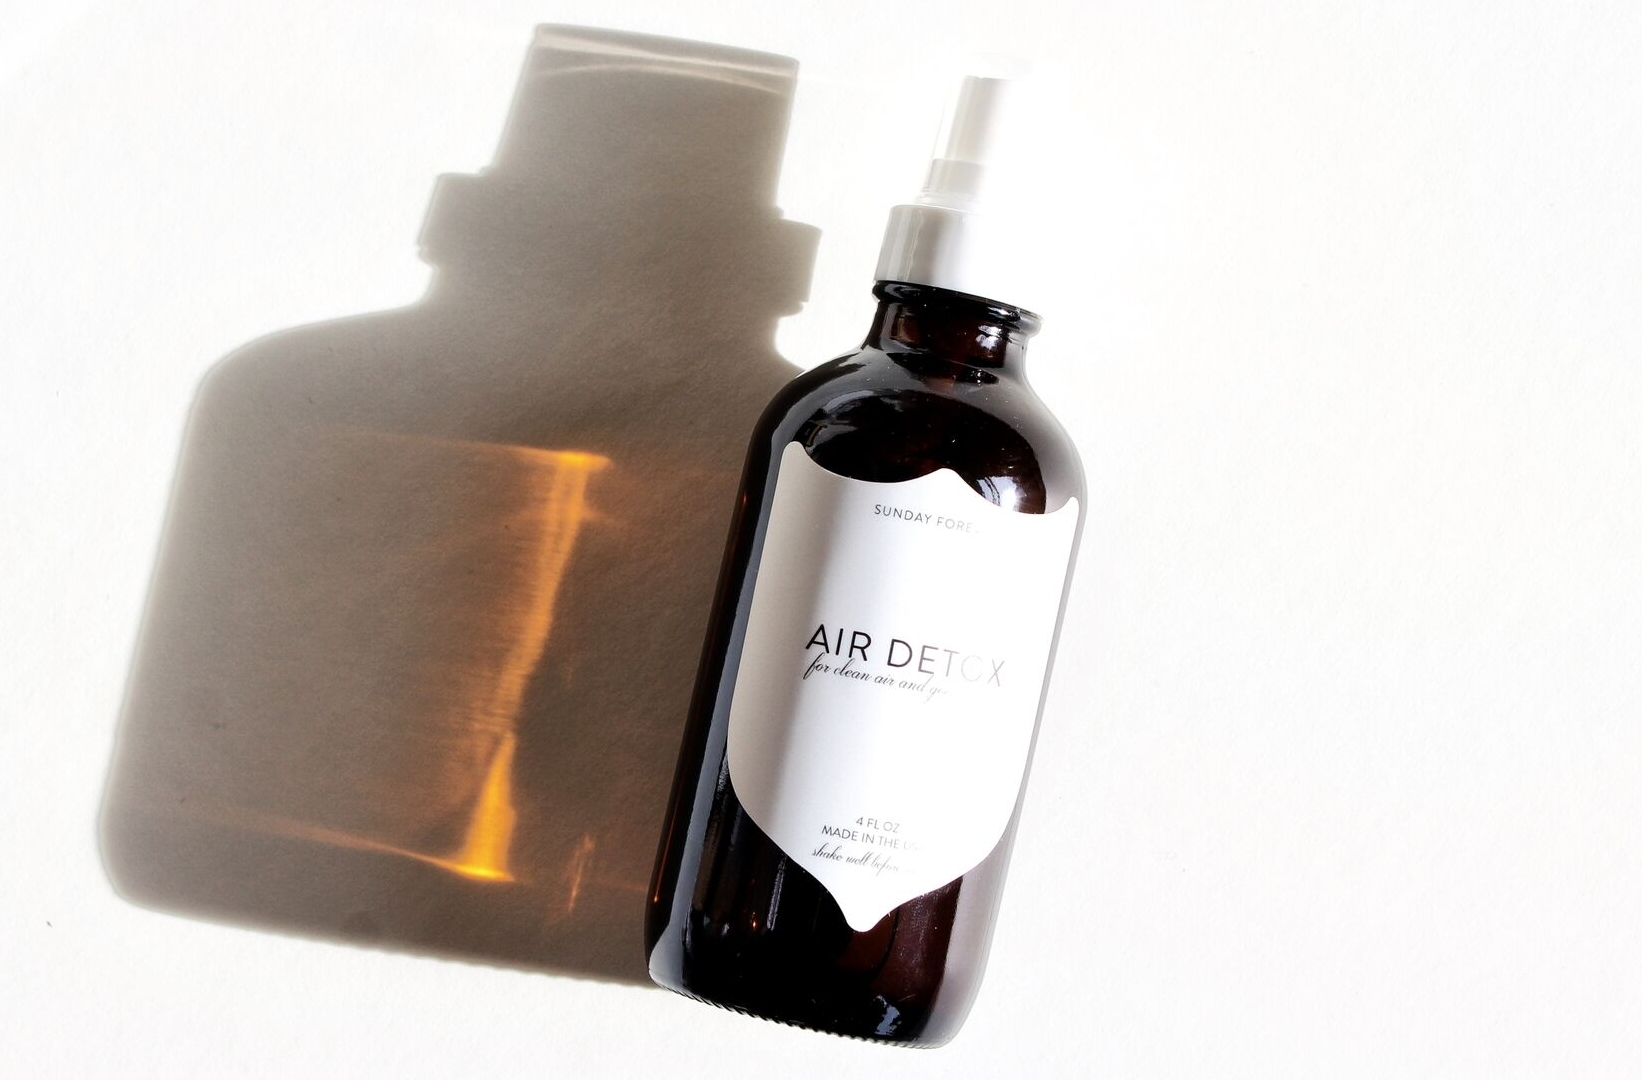 2. Change the linen, crack open that window and spray some of our Air Detox Mist into the room. Ahhhhh.... - Air Detox Mist - $24.00